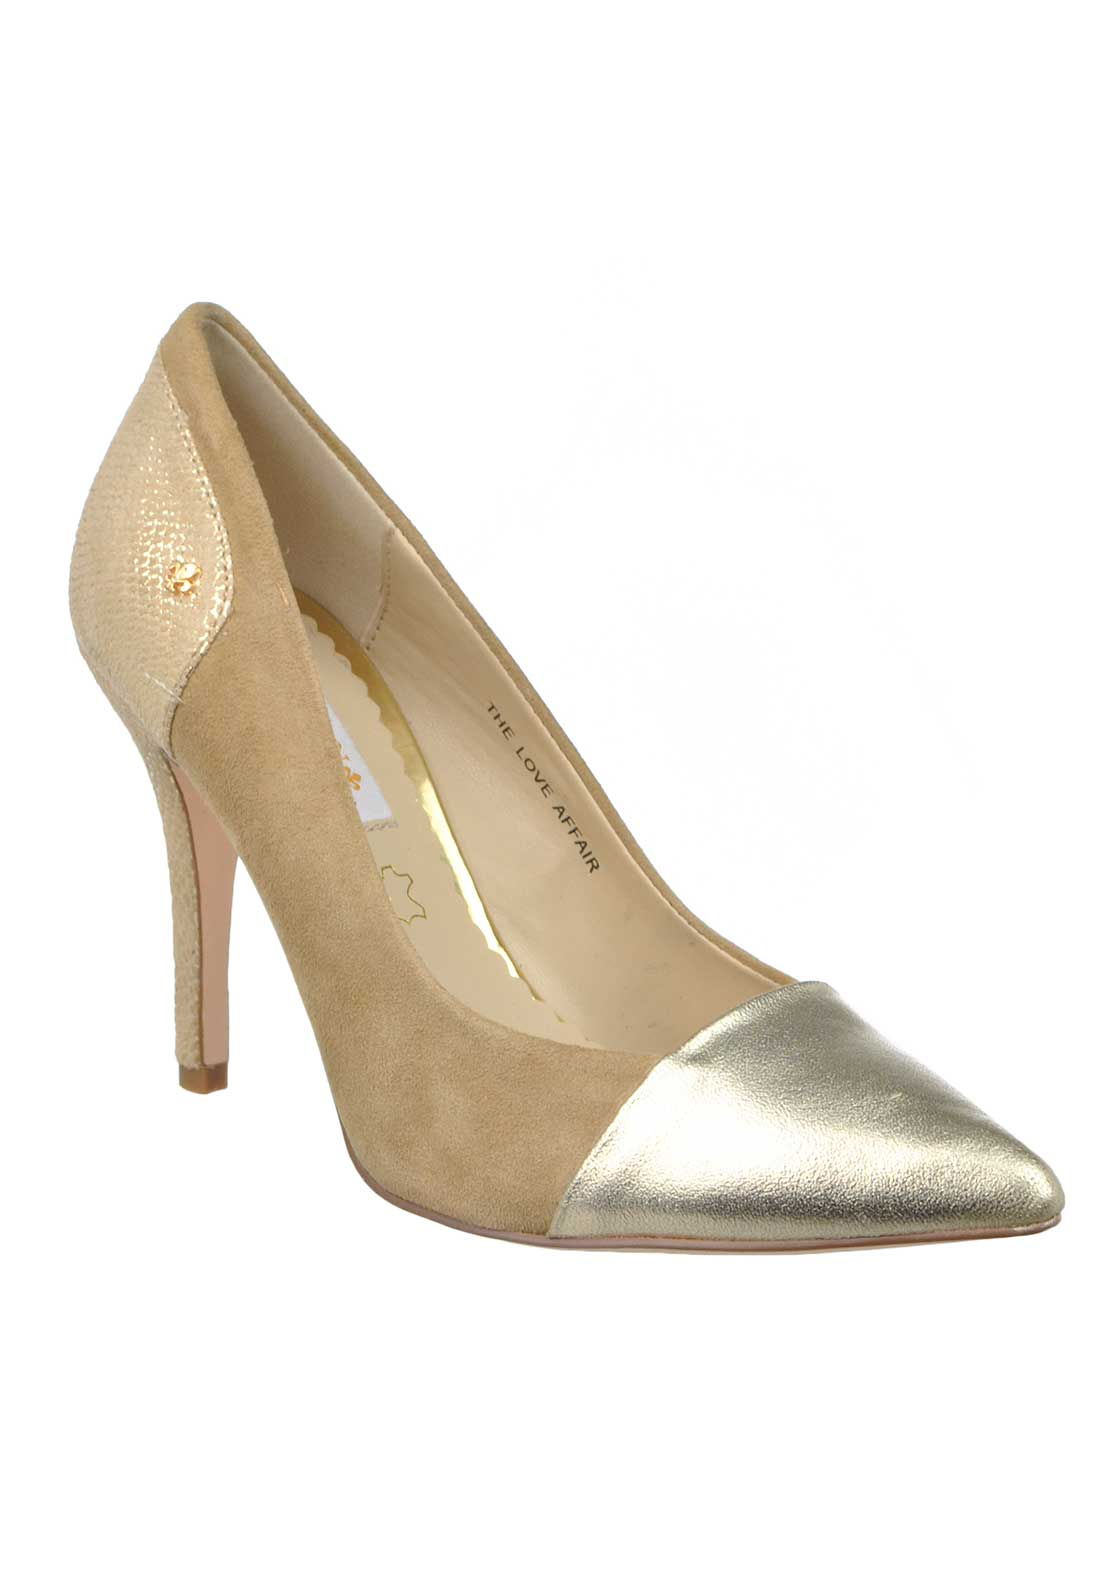 Amy Huberman Bourbon The Love Affair Shoe